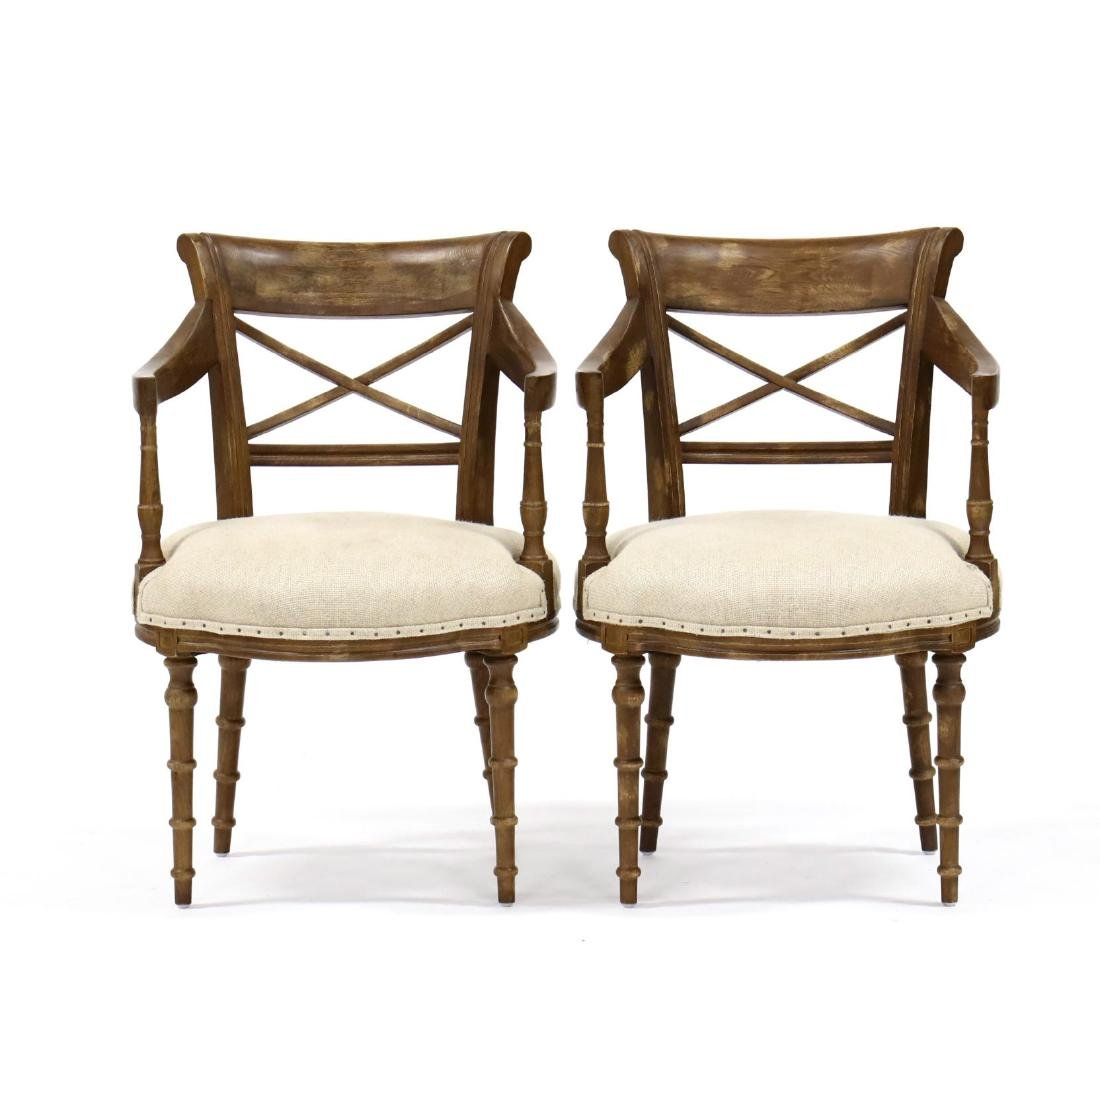 Park Hill Collection, Pair of Regency Style Arm Chairs